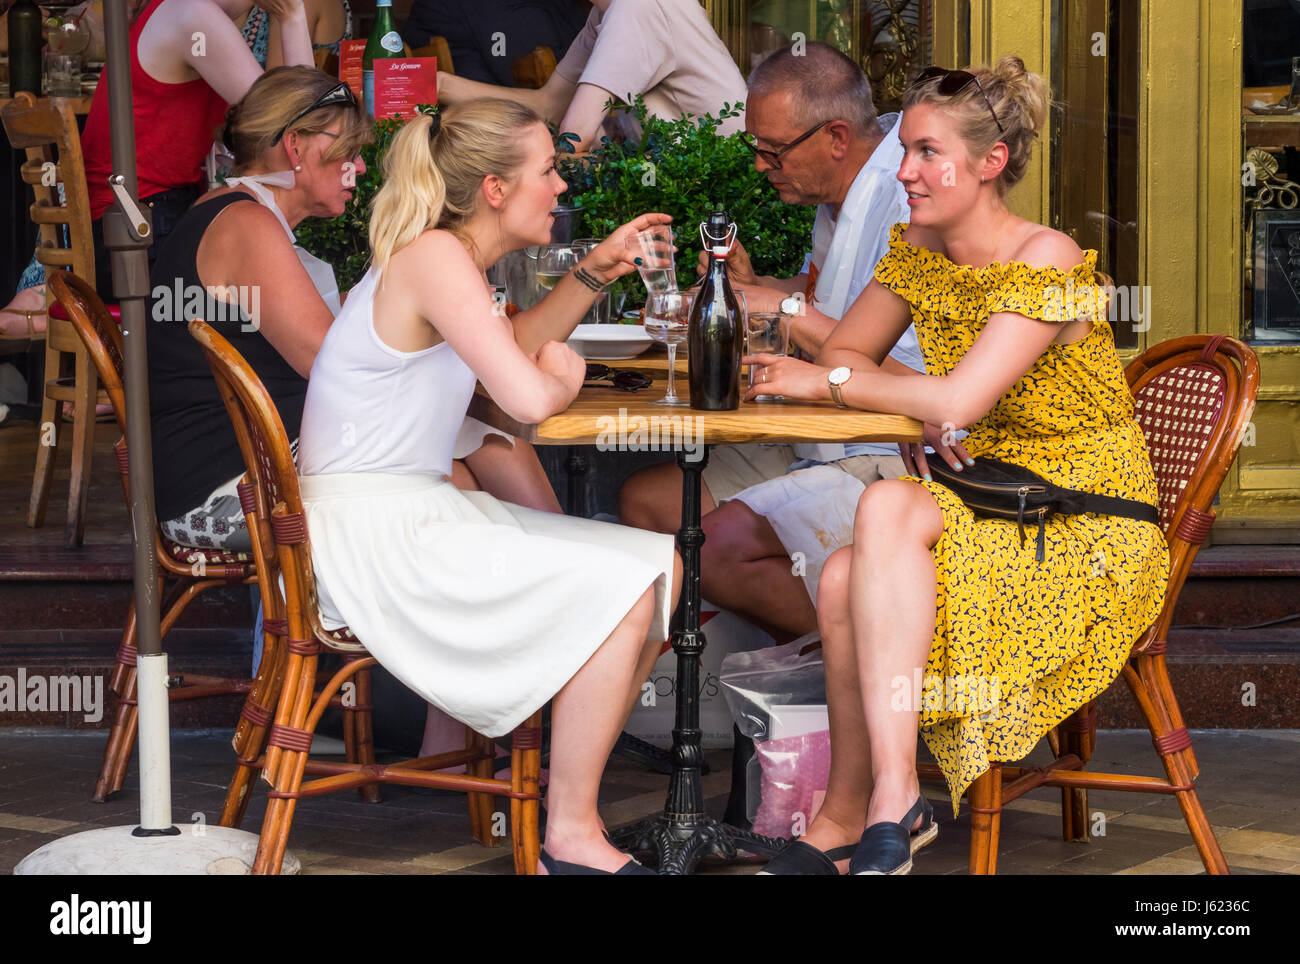 Female friends having a conversation at an Italian restaurant on Mulberry Street in Little Italy in New York City - Stock Image